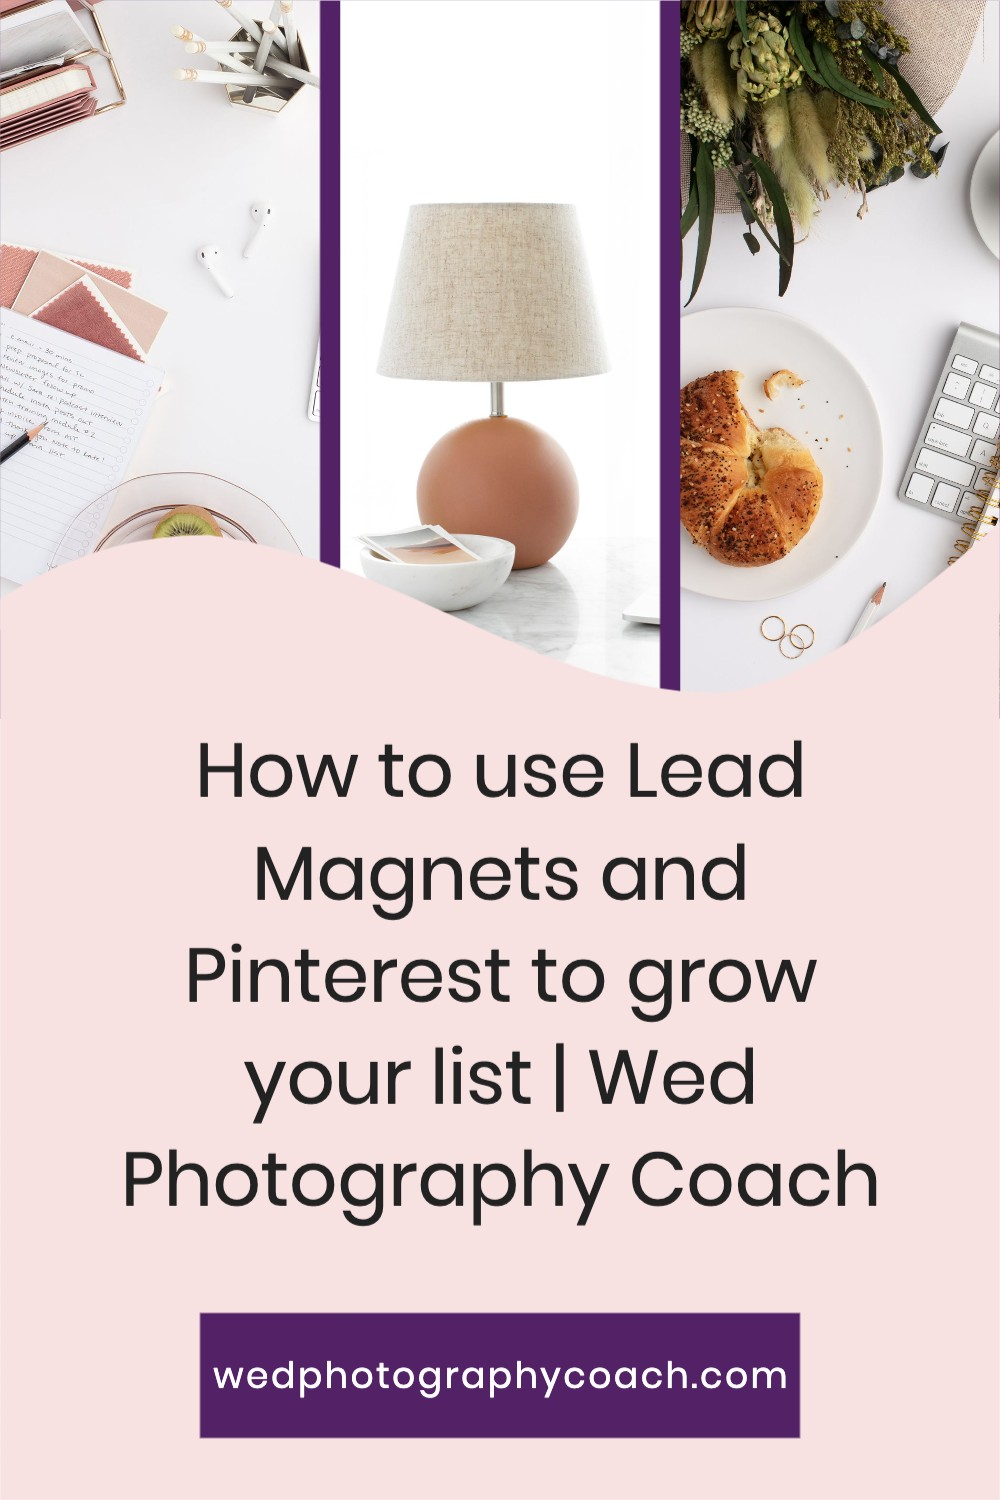 How-to-use-Lead-Magnets-and-Pinterest-to-grow-your-list 6